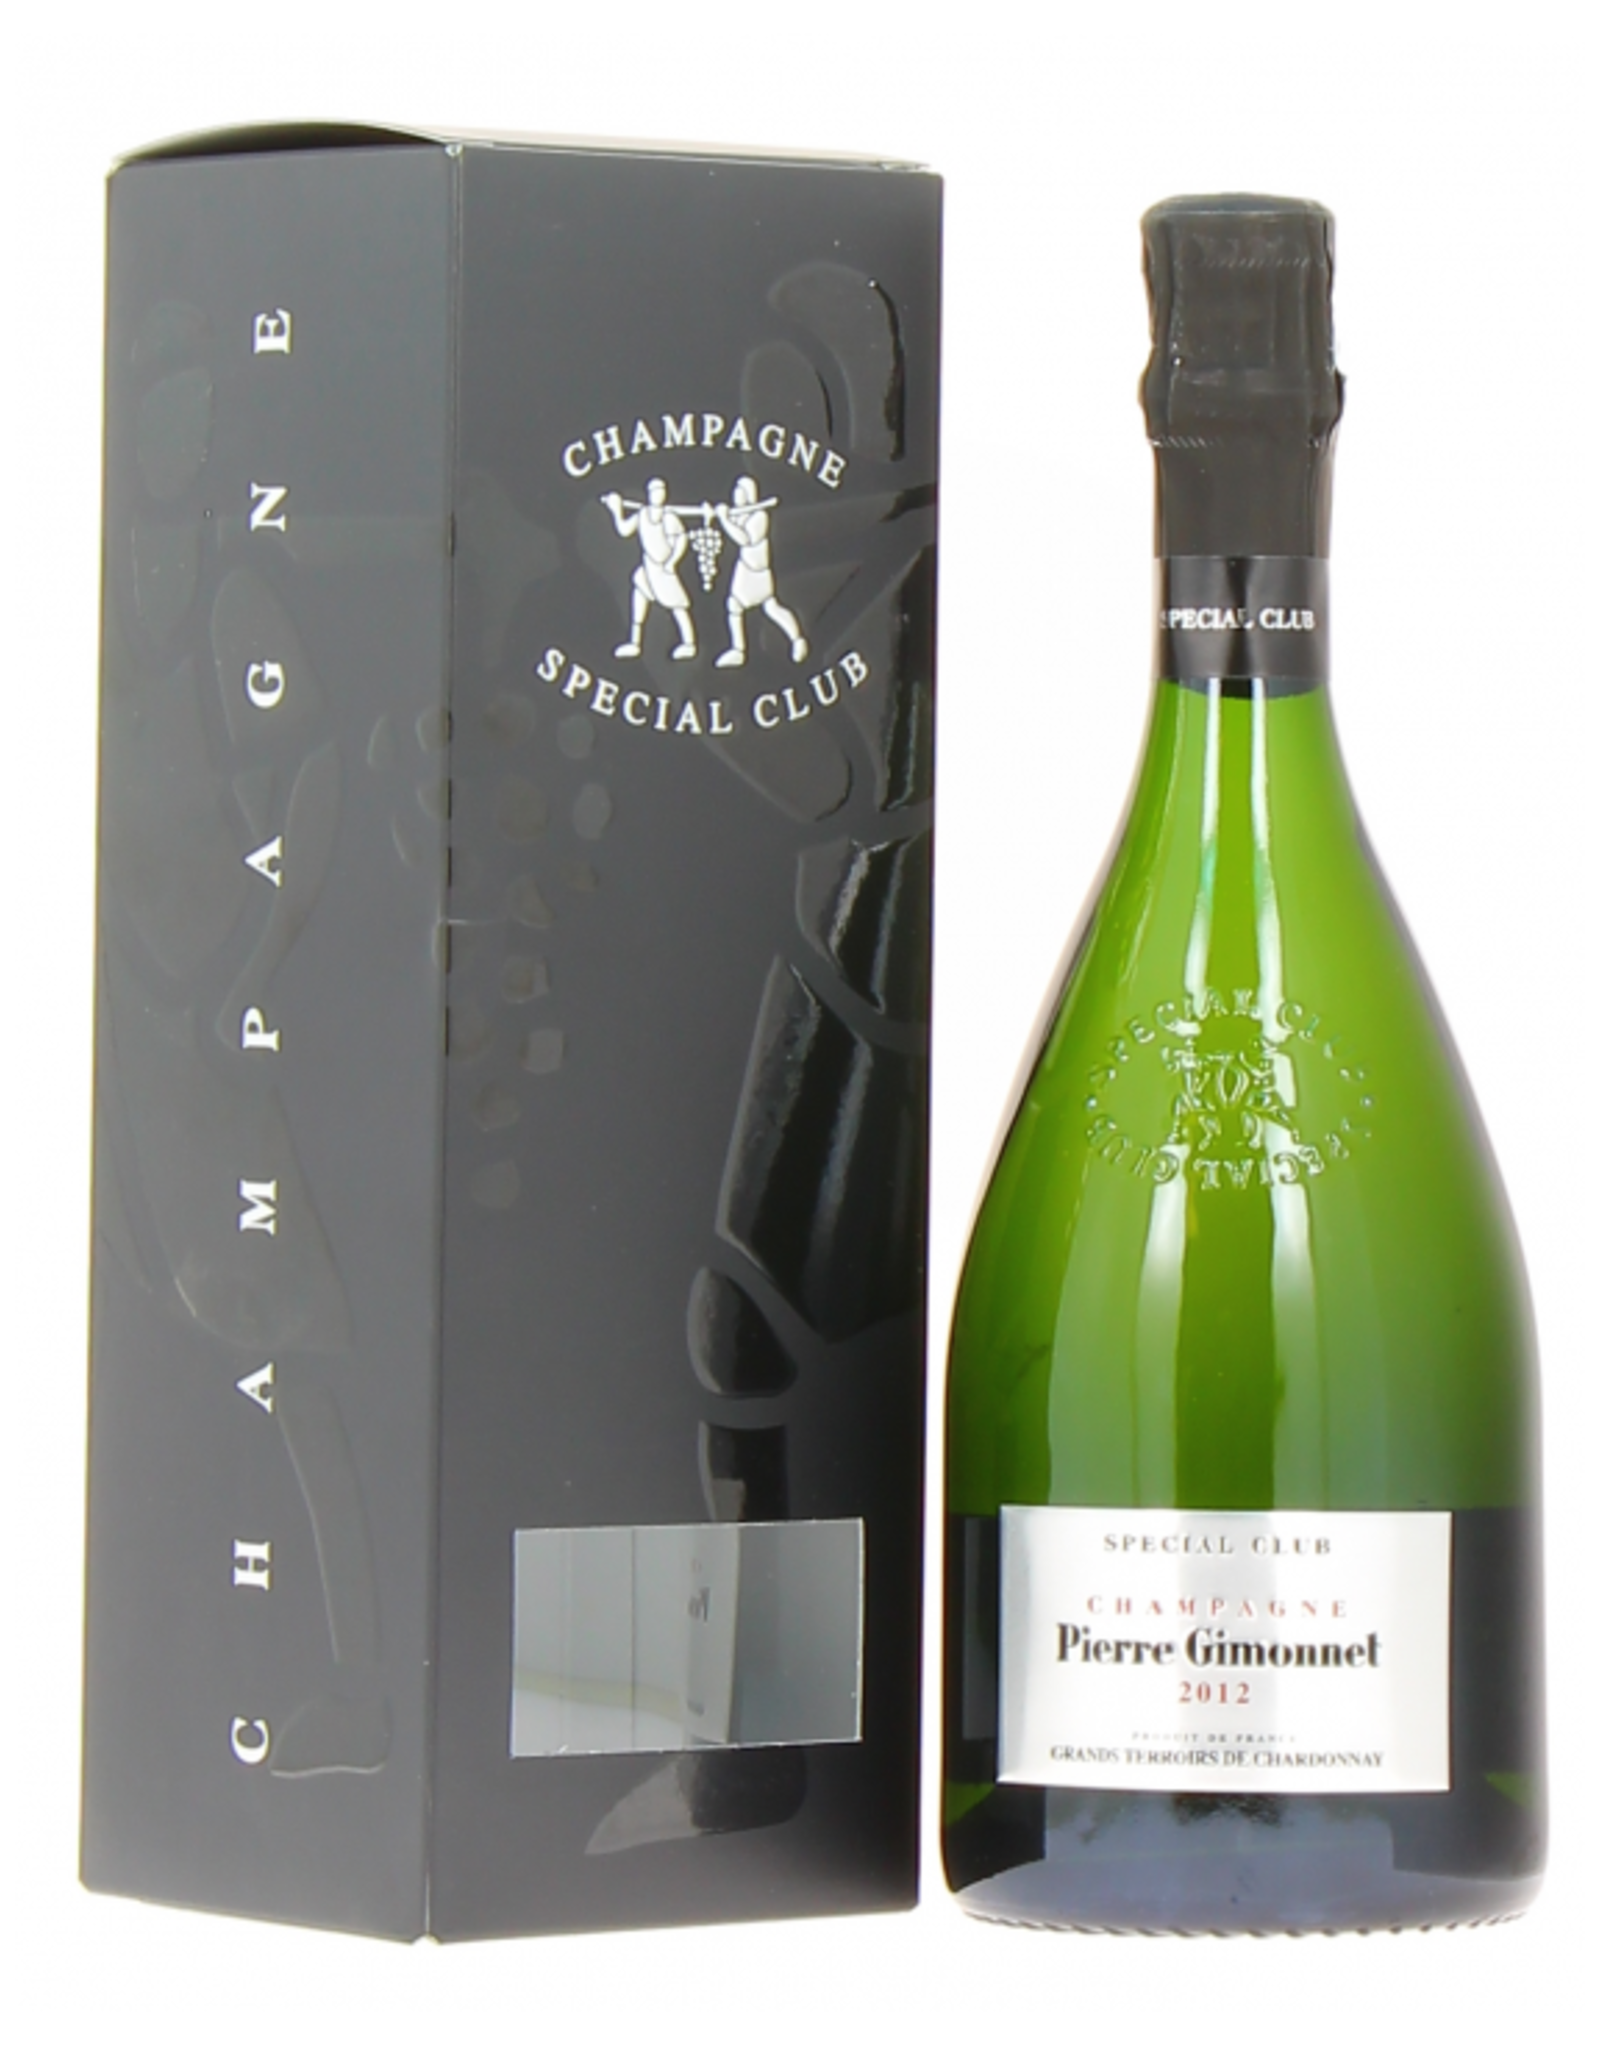 Pierre Gimonnet Special Club Champagne 2012